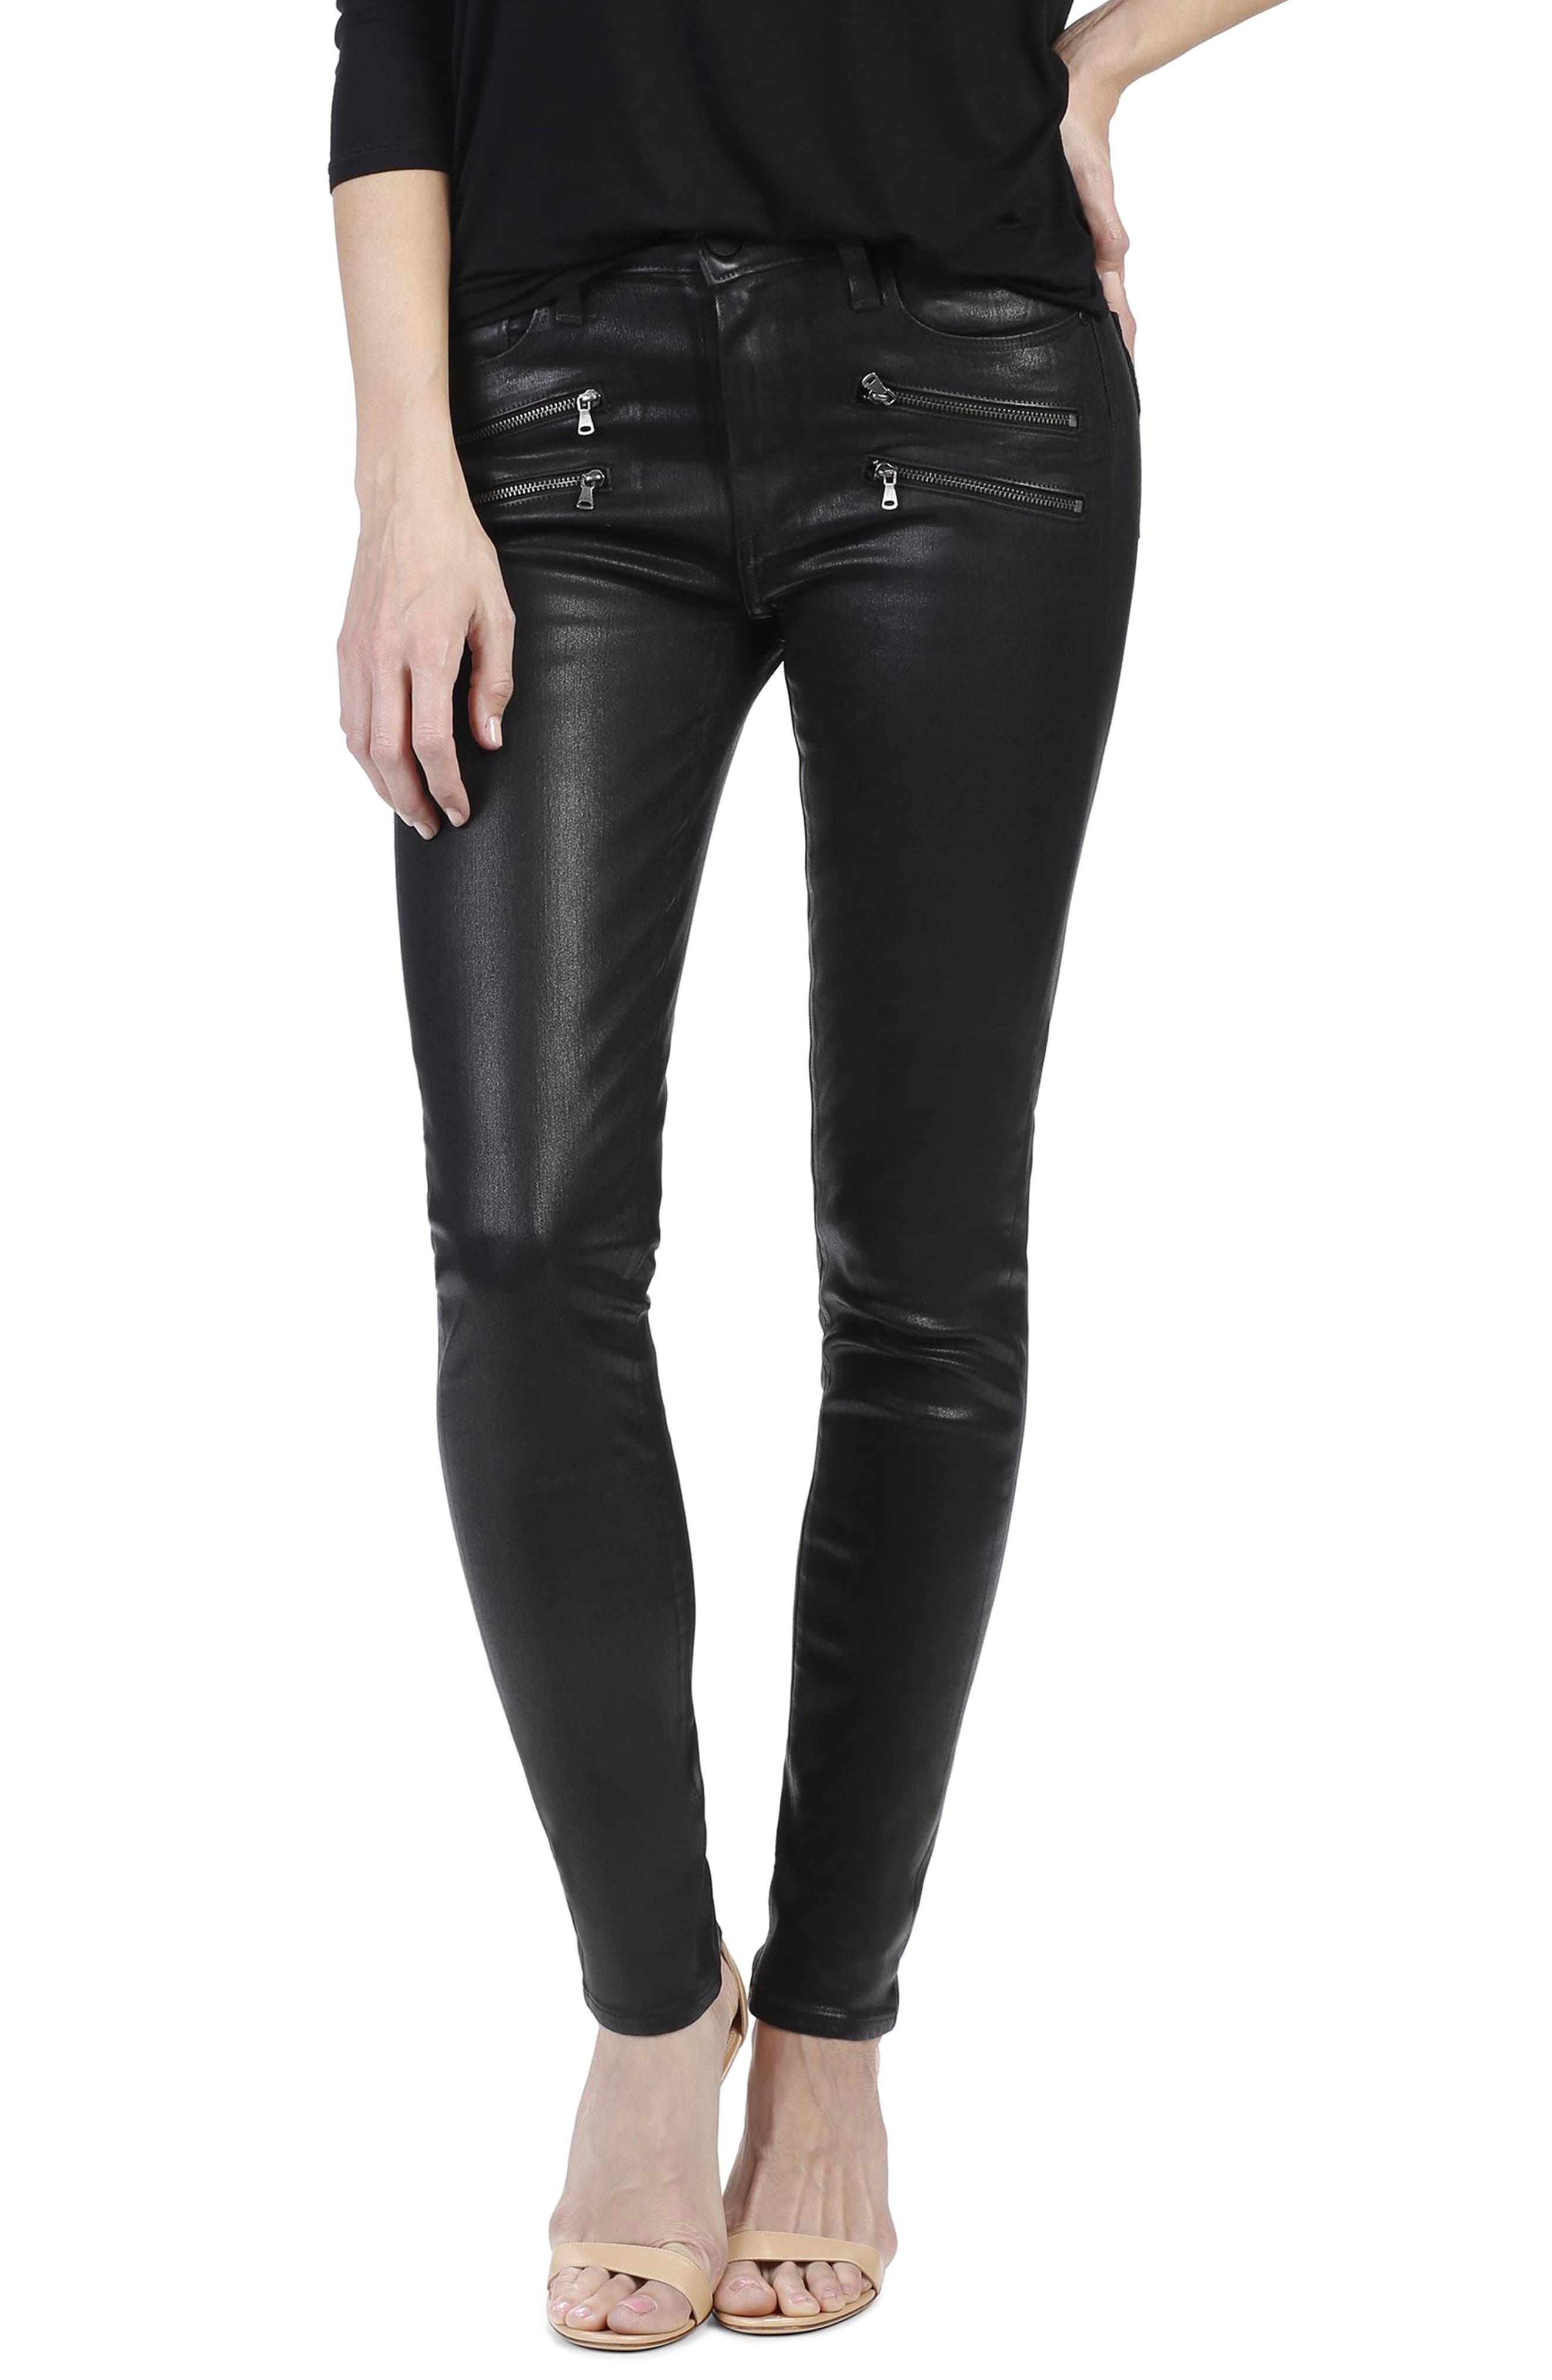 Edgemont Zip Coated High Waist Ultra Skinny Jeans,                         Main,                         color, Black Fog Luxe Coating